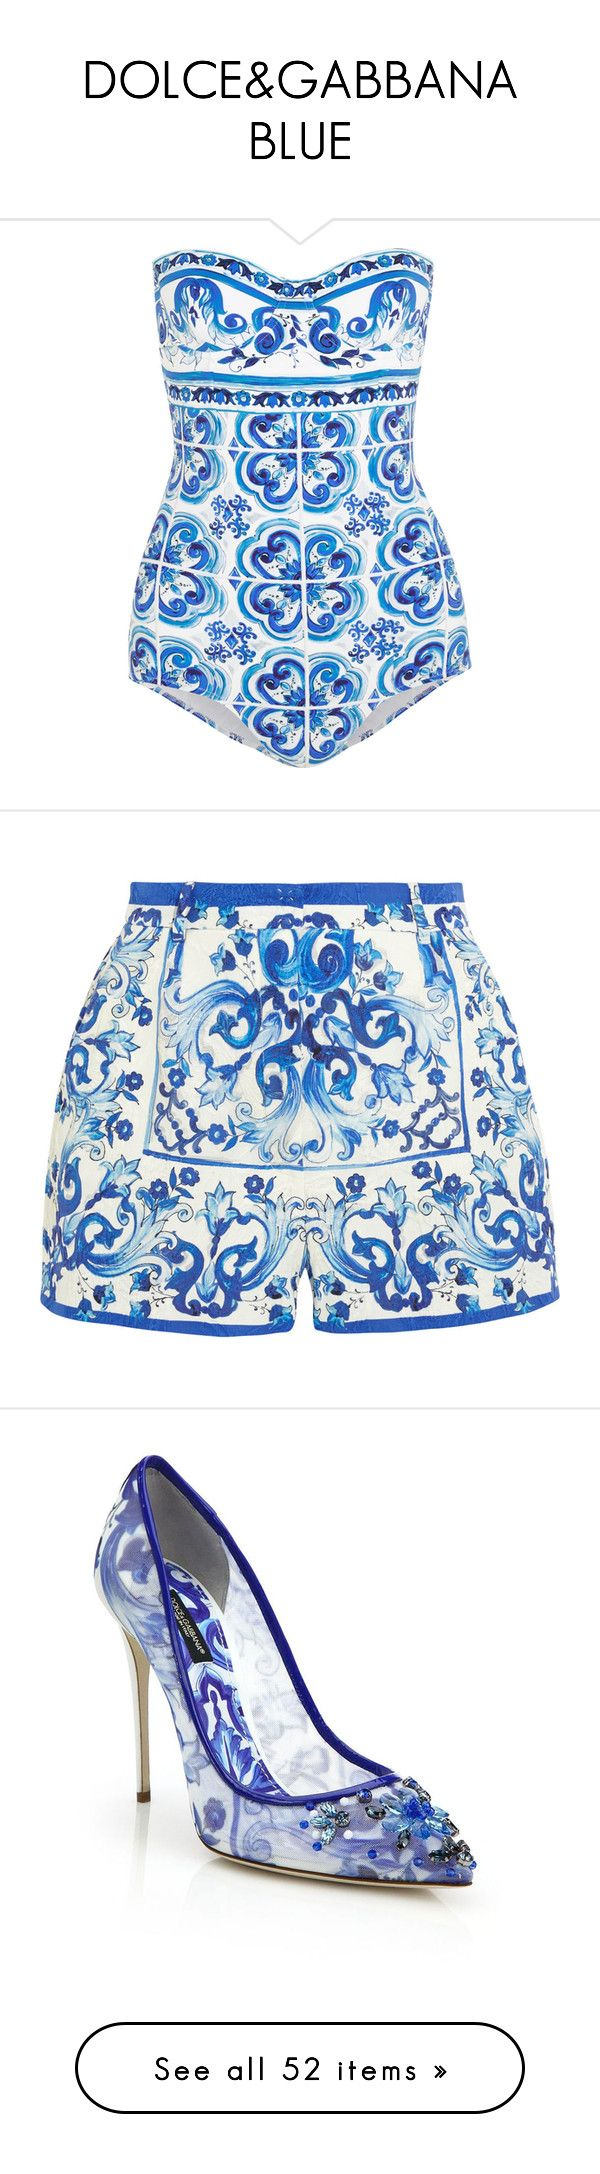 """DOLCE&GABBANA BLUE"" by adelaida0912 ❤ liked on Polyvore featuring swimwear, one-piece swimsuits, swimsuits, bikini, bathing suits, blue, swim bikini, underwire one piece swimsuit, swimming costume and swim suits"